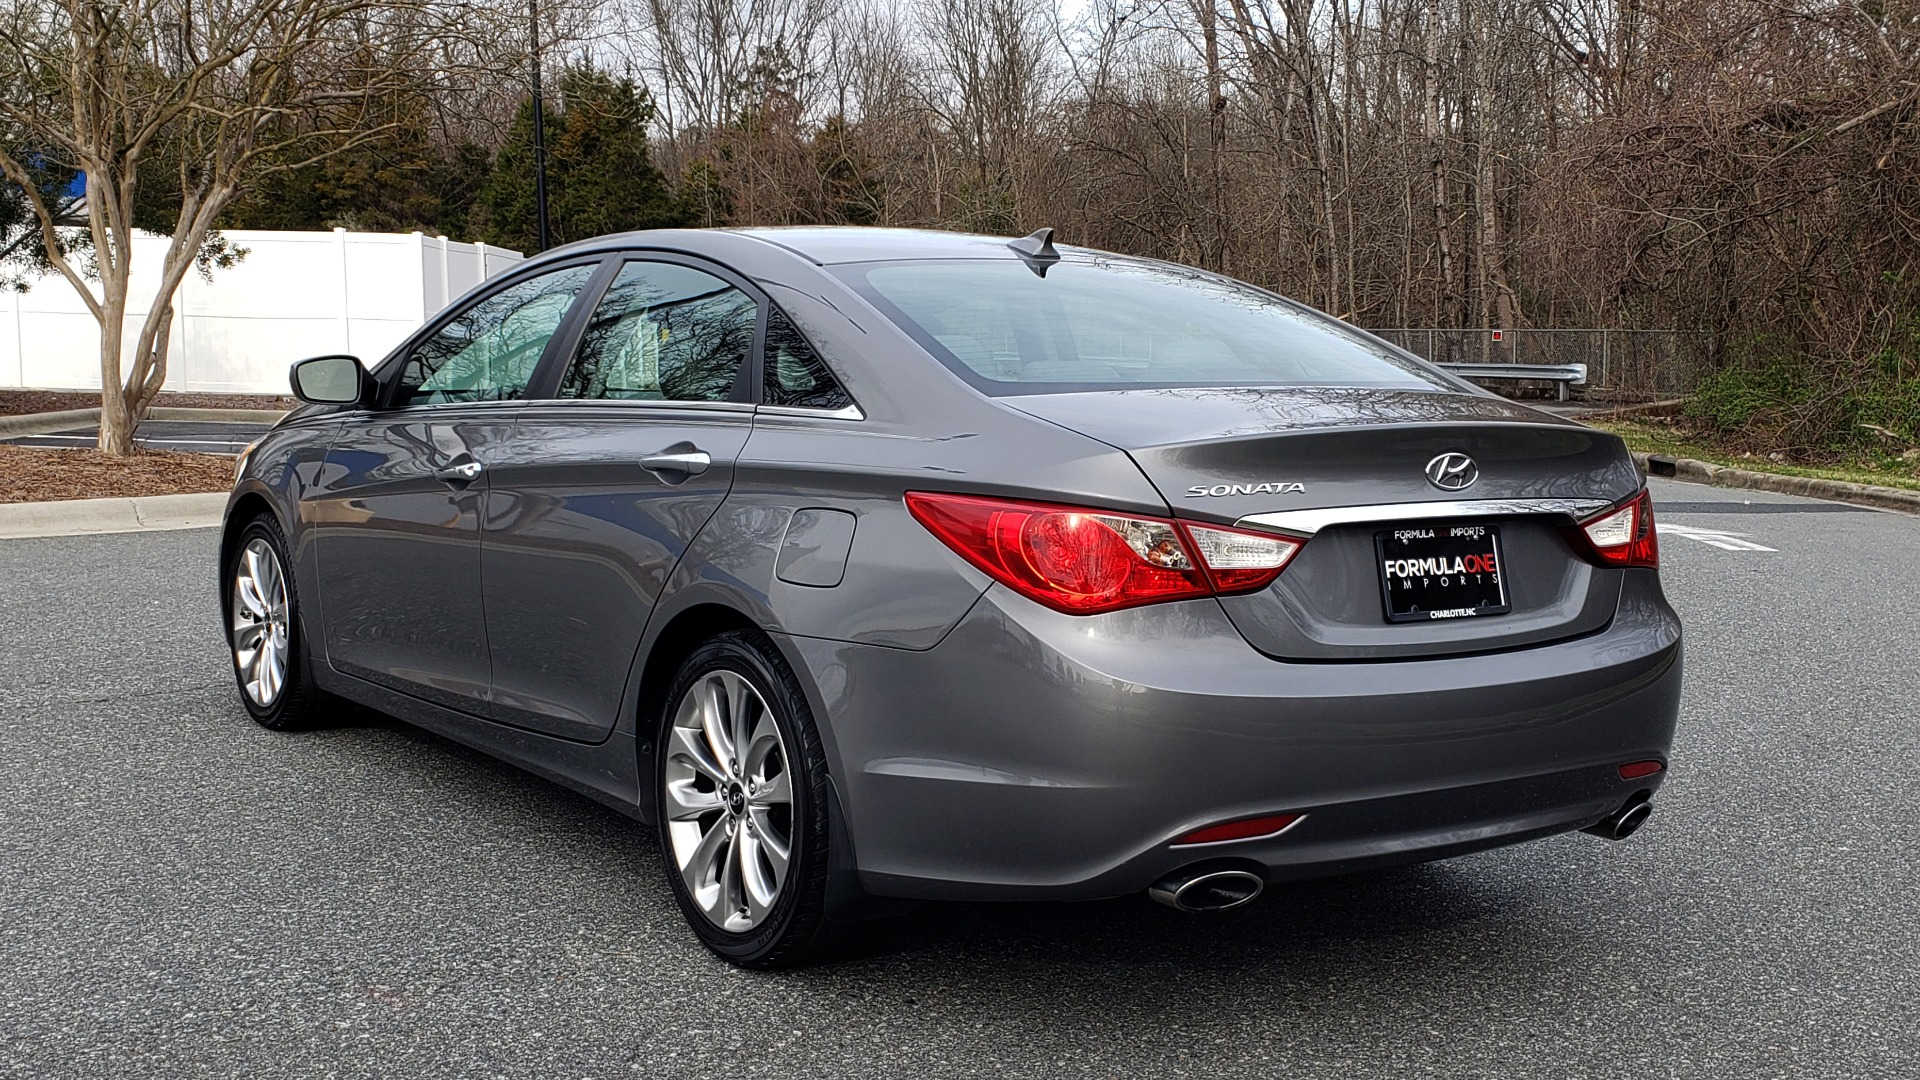 Used 2013 Hyundai SONATA SE AUTO / 2.4L 4-CYL / 6-SPD AUTO / VERY CLEAN for sale Sold at Formula Imports in Charlotte NC 28227 3